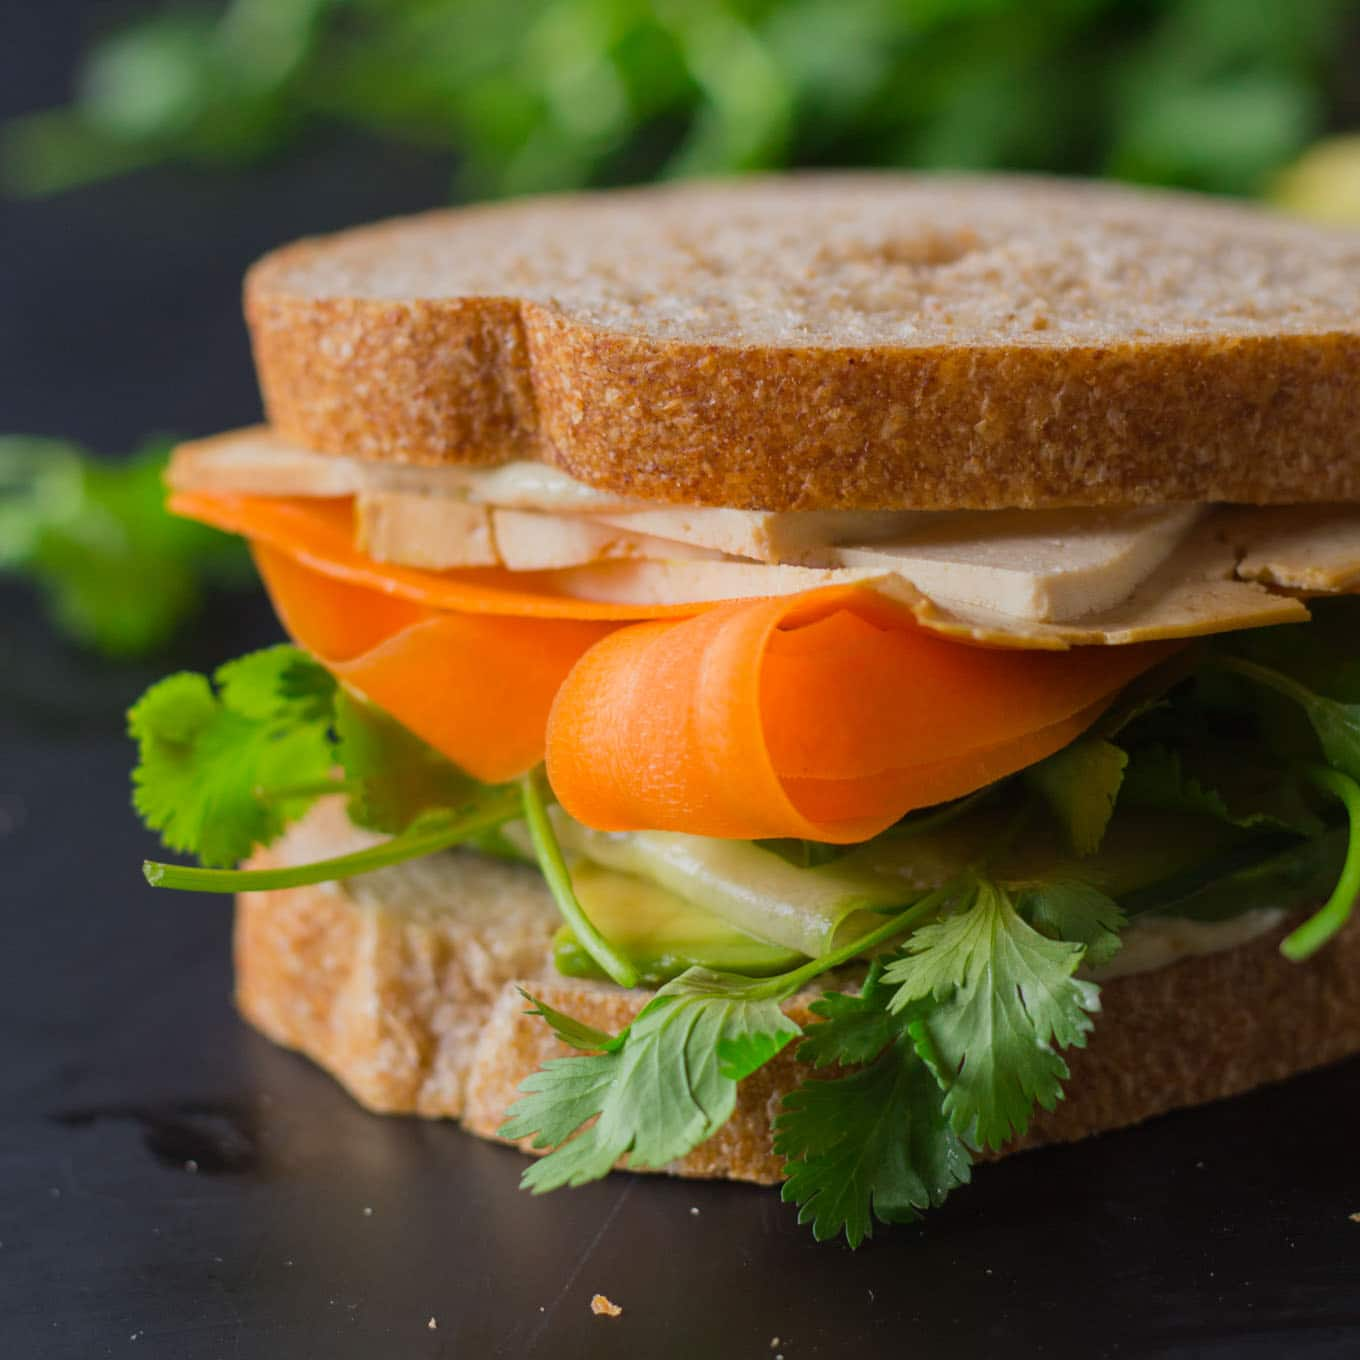 Tofusion Vegetable Sandwich - Asian flavors converge in this surprisingly delicious sandwich! Make lunch more adventurous! Vegan, Oil-free | http://eatwithinyourmeans.com